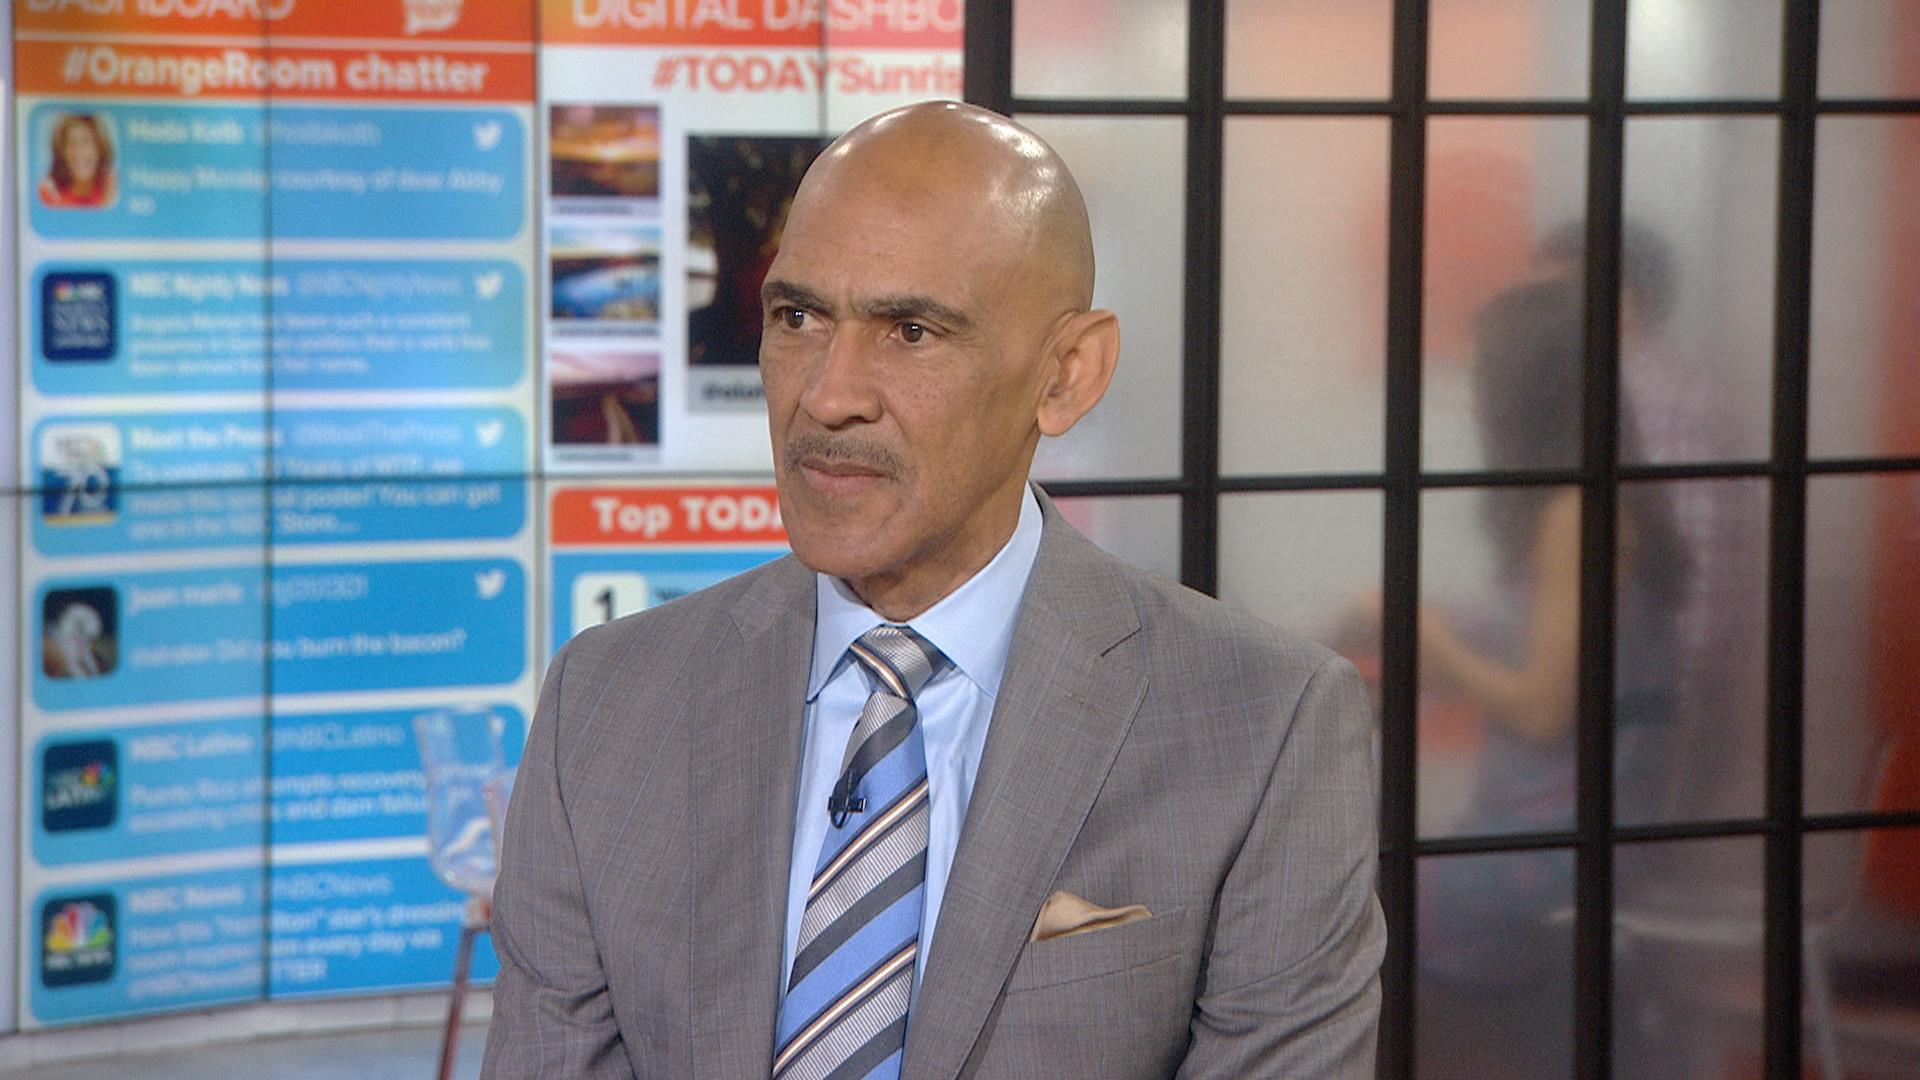 a biography of tony dungy a football player Rodney harrison harrison is a former professional american football player of the (right) along with colleagues dan patrick and tony dungy at a nfl.